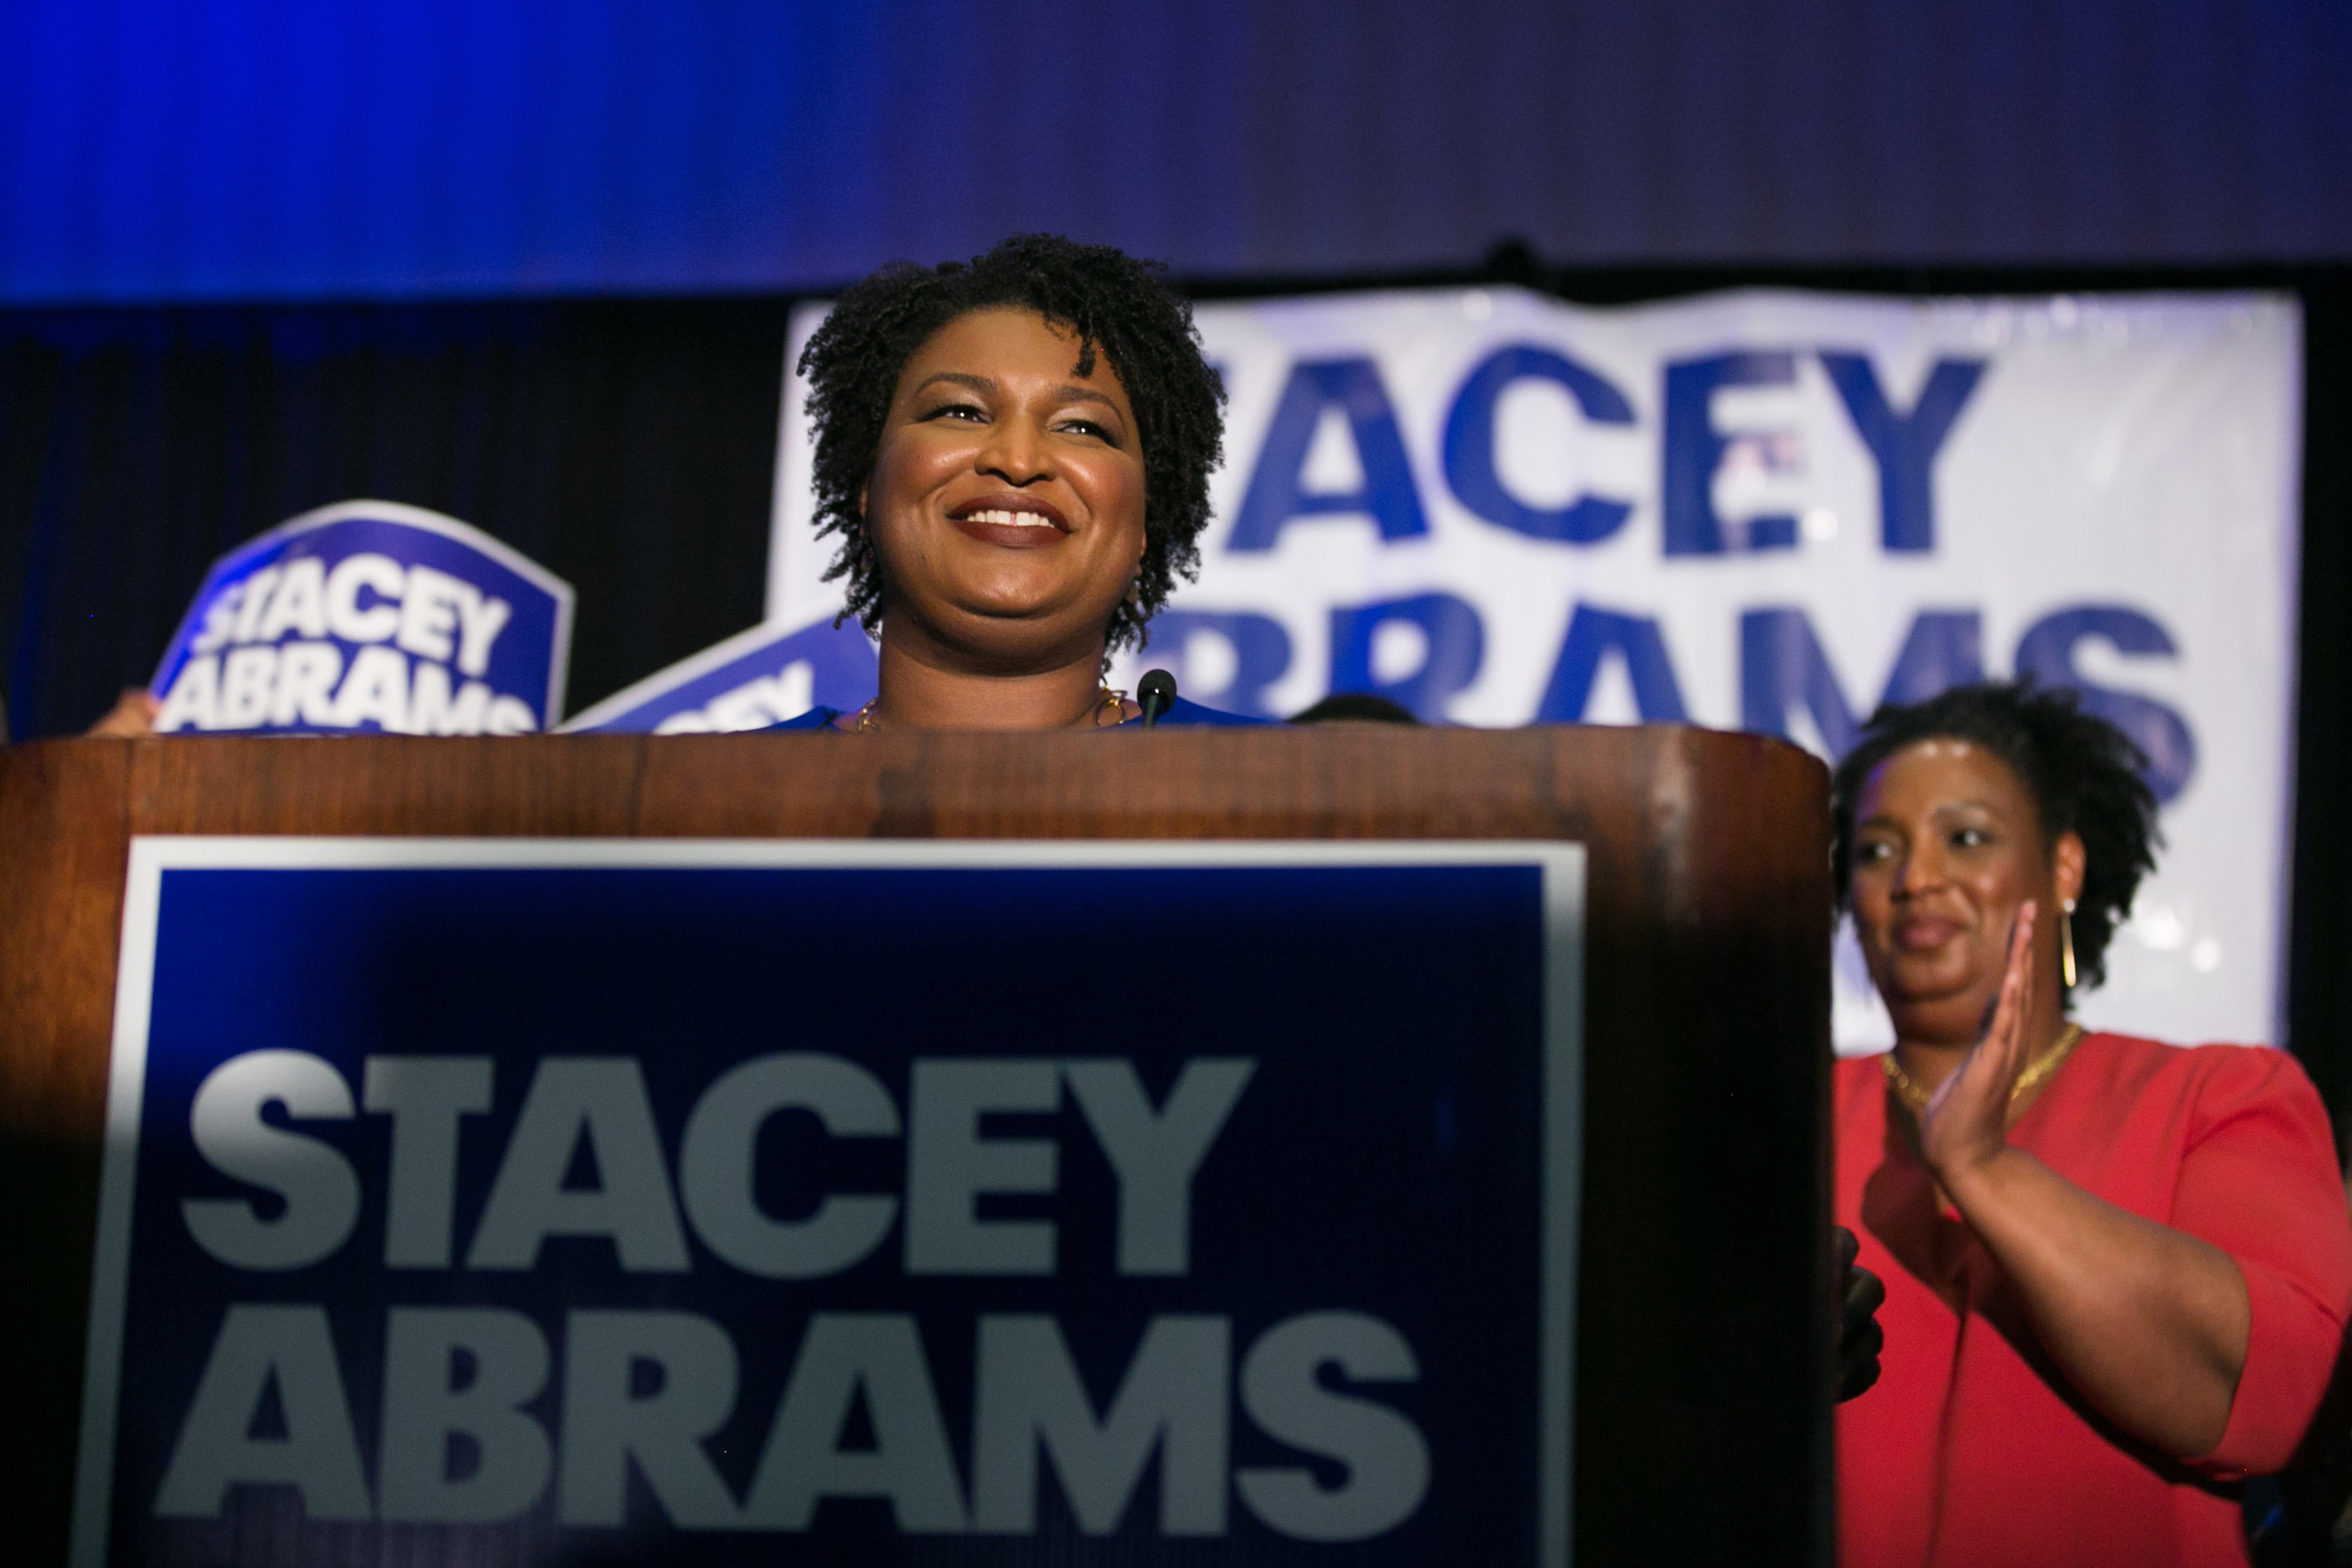 ATLANTA, GA - MAY 22:  Georgia Democratic Gubernatorial candidate Stacey Abrams takes the stage to declare victory in the primary during an election night event on May 22, 2018 in Atlanta, Georgia.  If elected, Abrams would become the first African American female governor in the nation.  (Photo by Jessica McGowan/Getty Images)